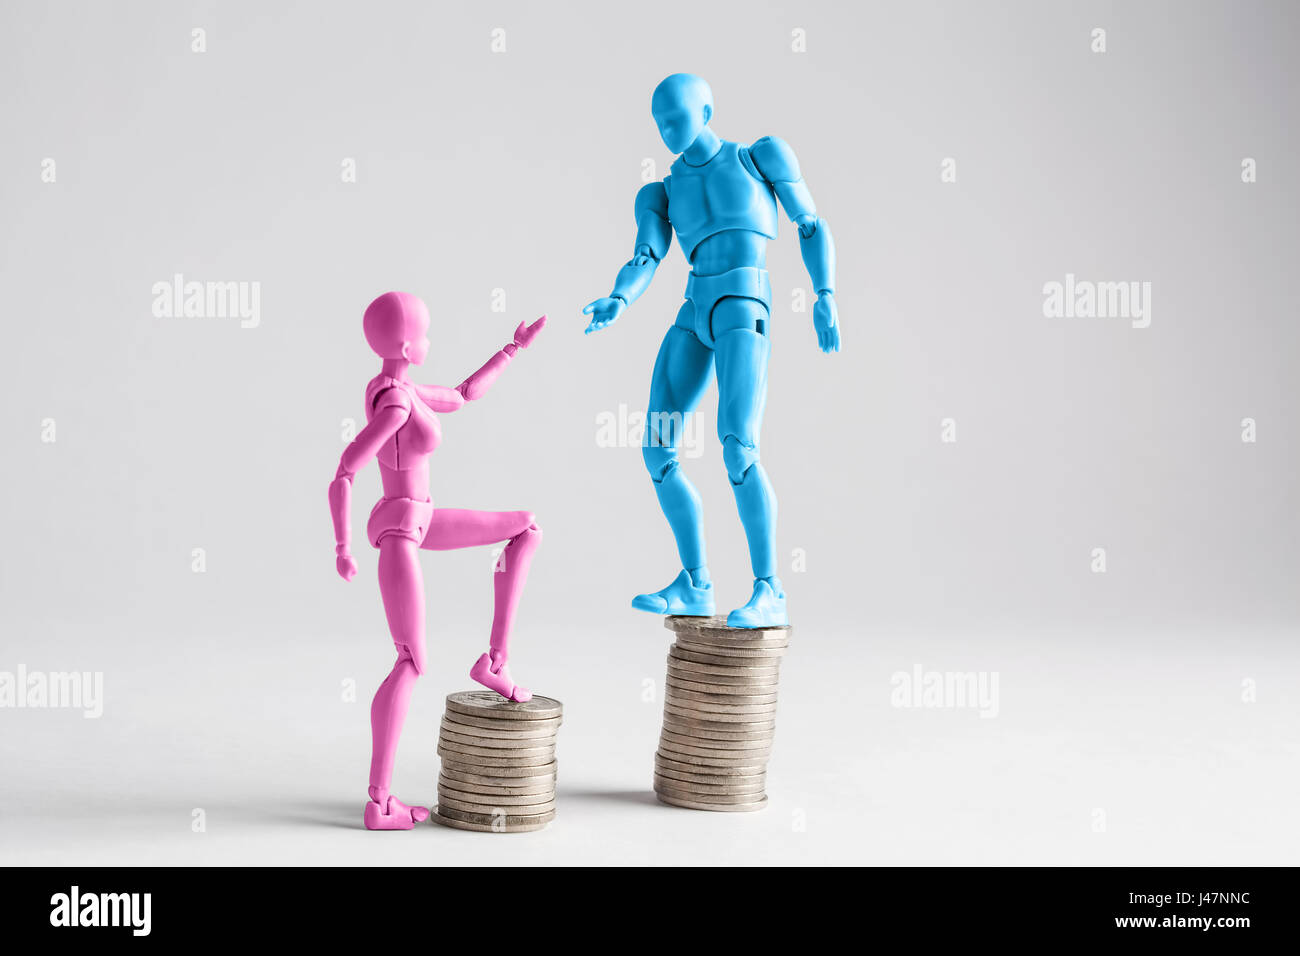 Income inequality concept shown with realistic male and female figurines and piles of coins - Stock Image